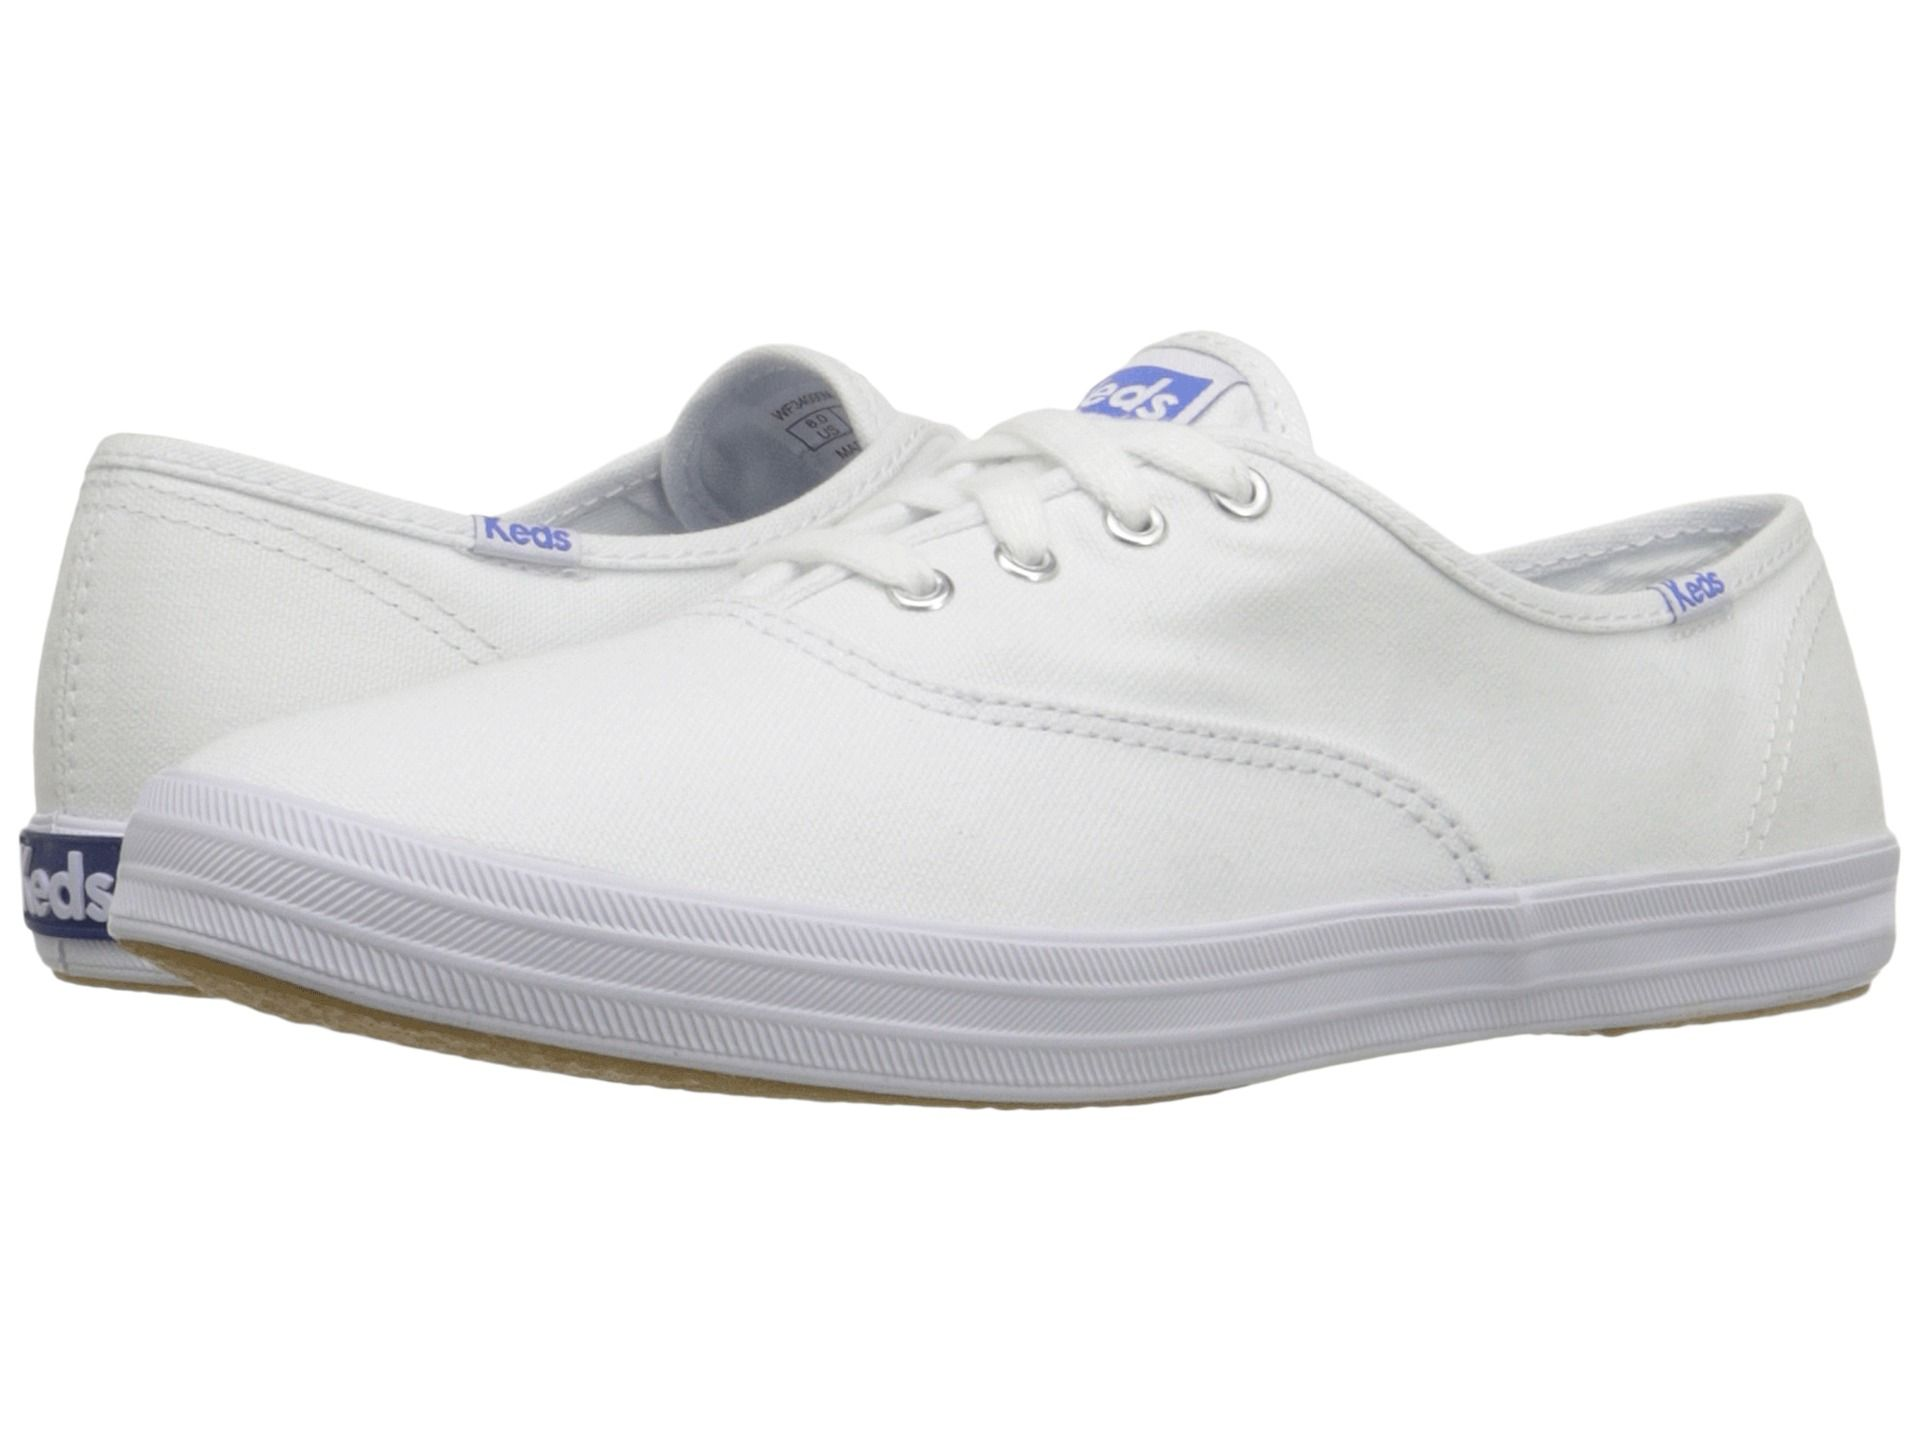 women's keds canvas tennis shoes zappos